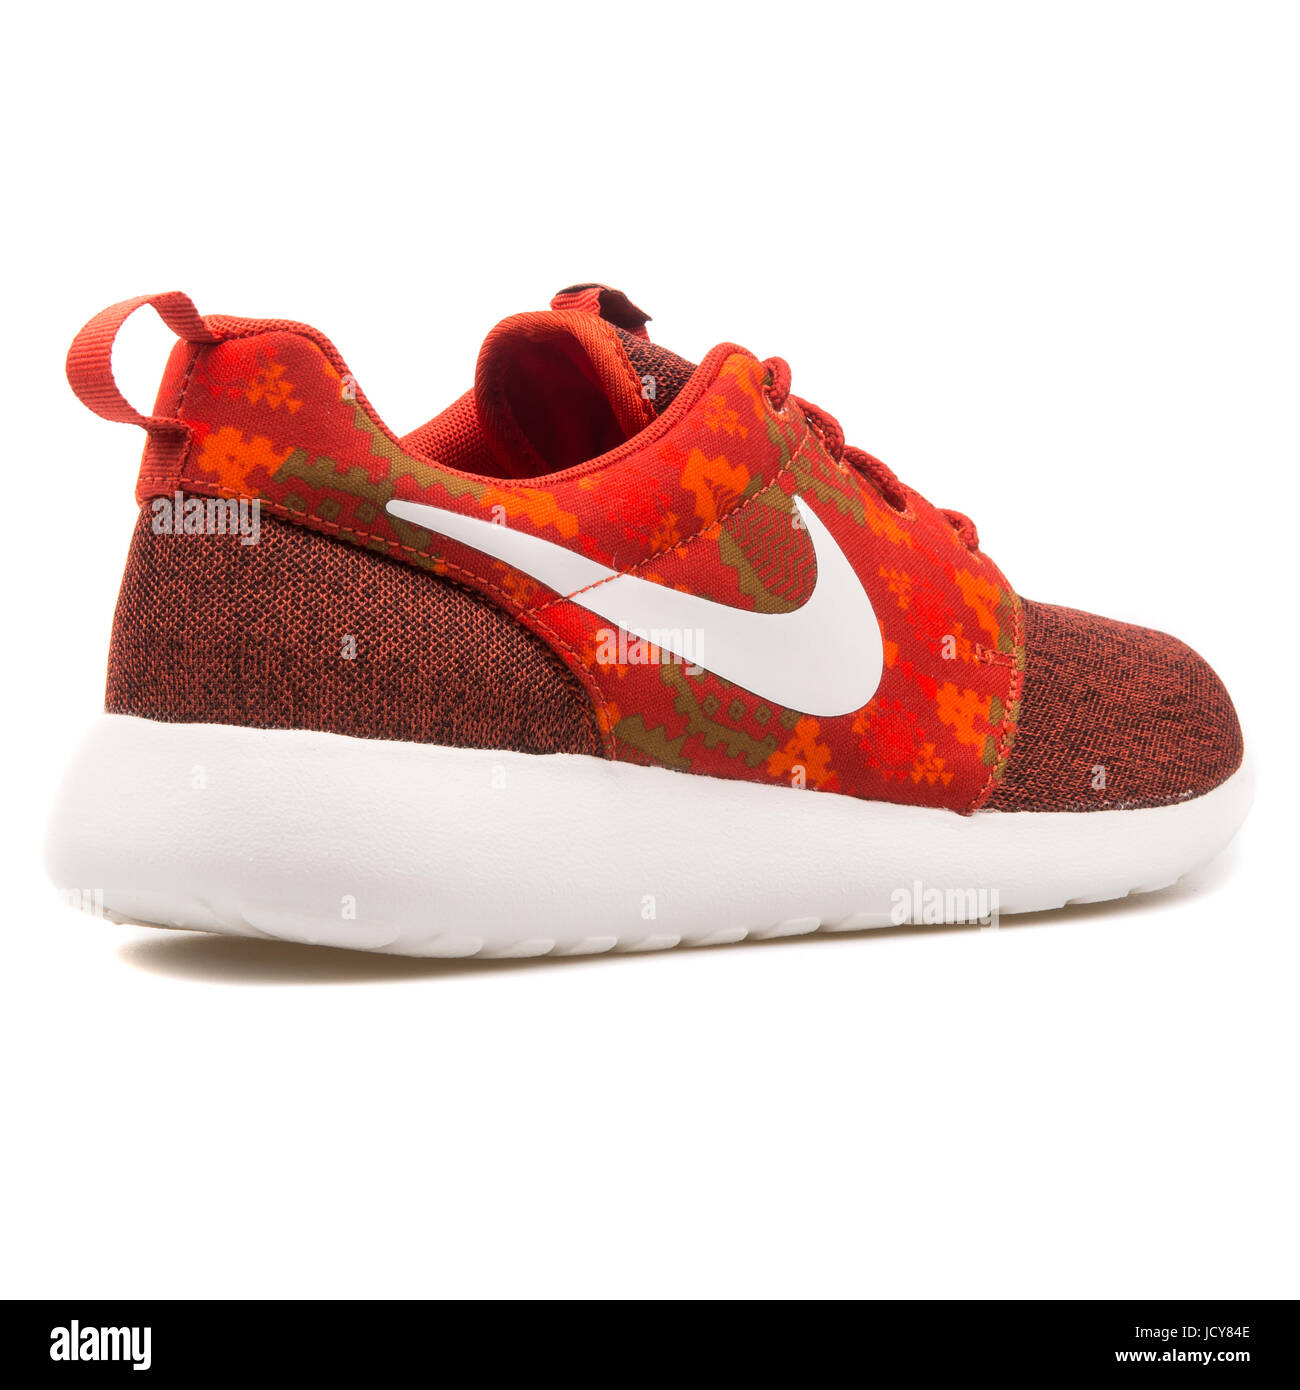 e2359abf7ecc switzerland nike roshe one print red orange mens running shoes 655206 612  fe6cd b04bc